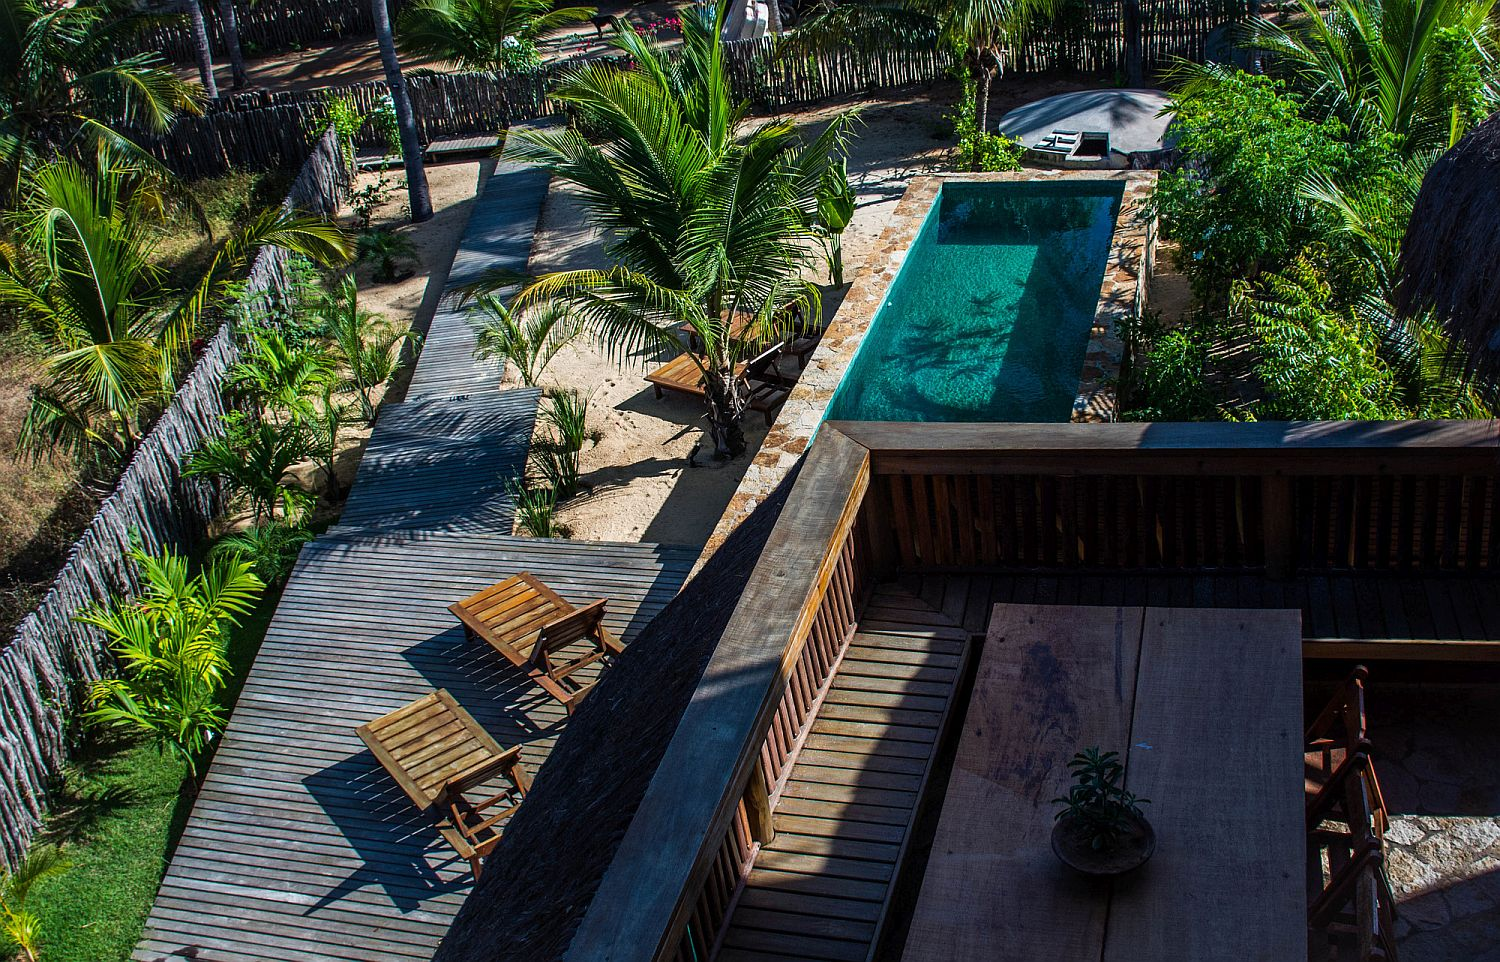 View from above of the Nomades House in Brazil